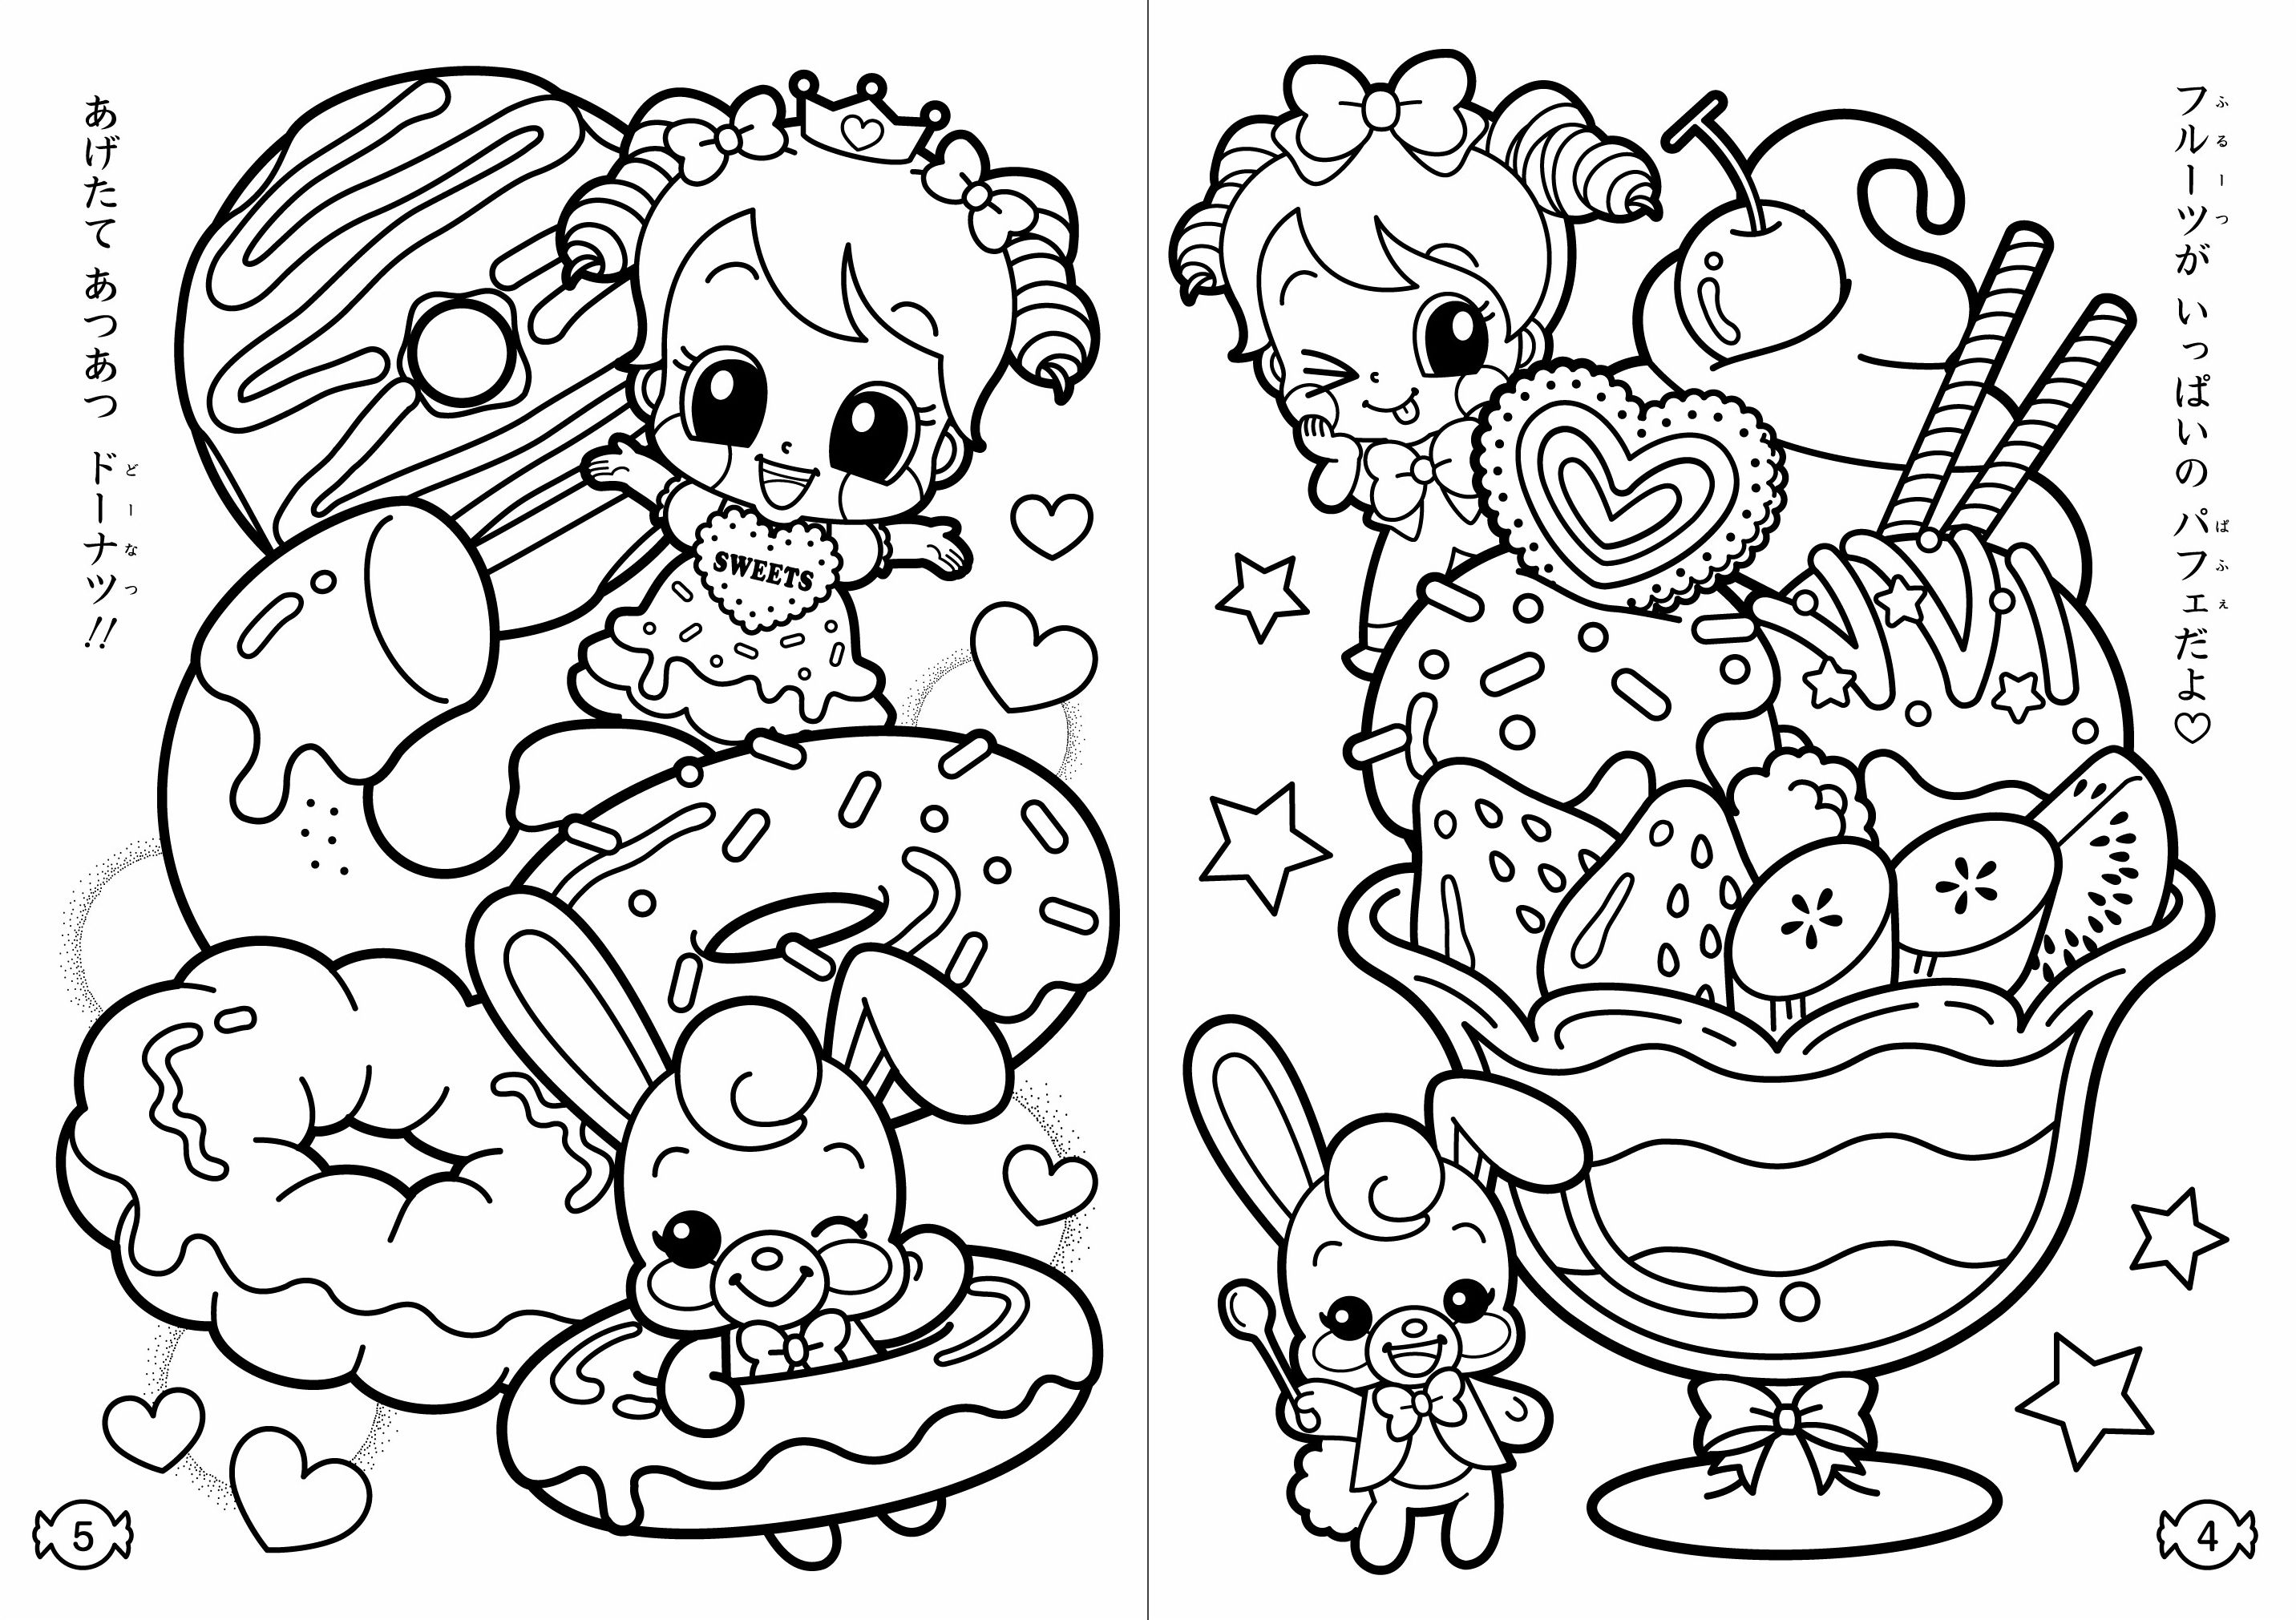 coloring cute food cute food coloring pages download and print cute food food coloring cute